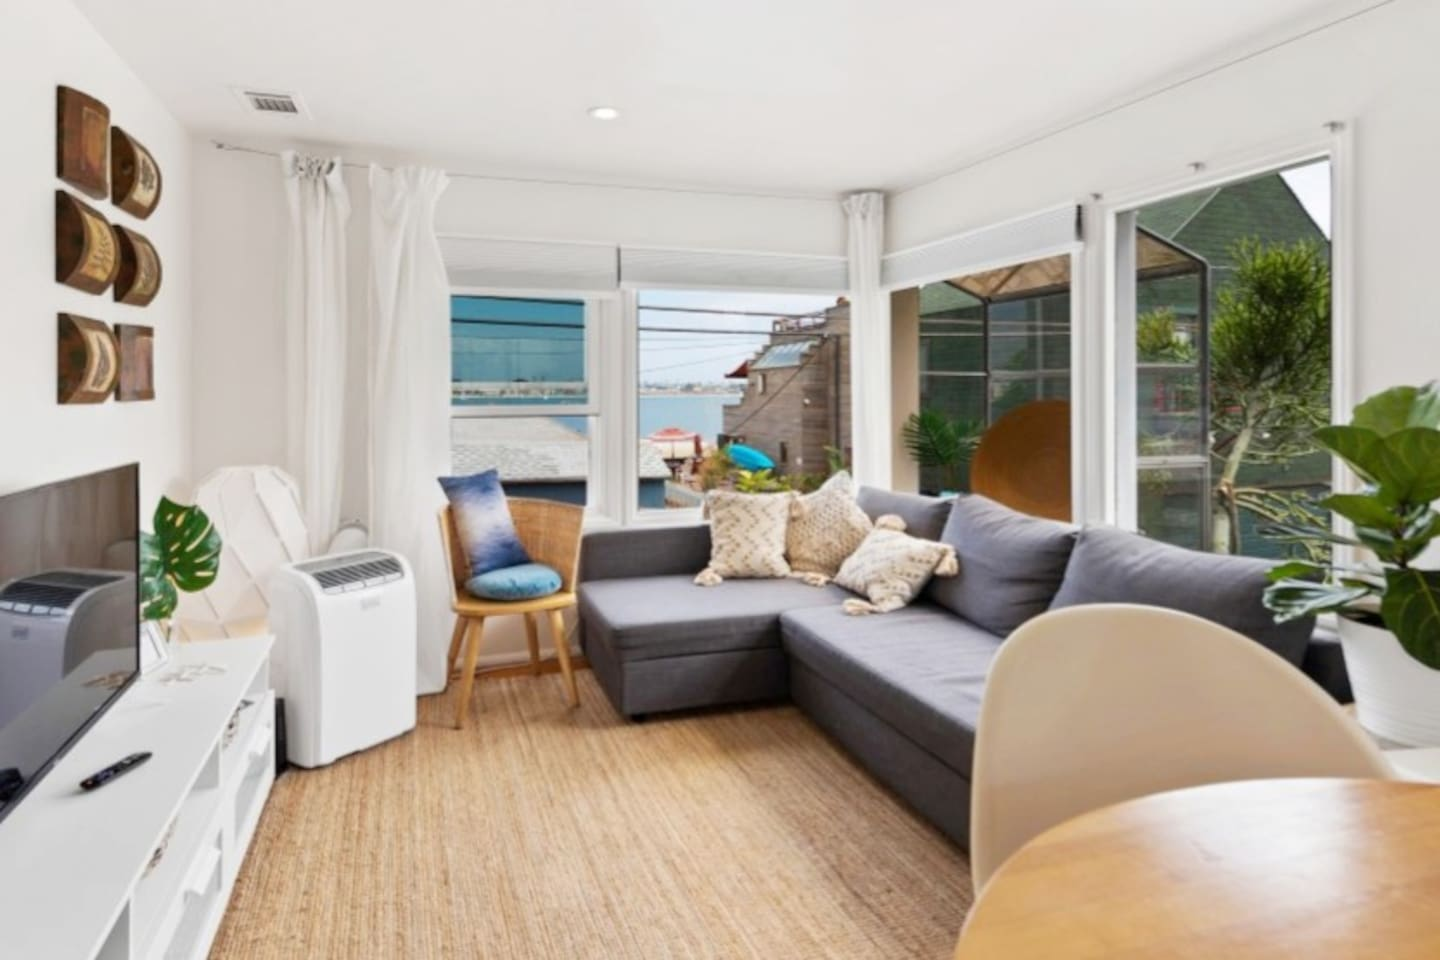 Enjoy the sea breeze and view of Mission Bay from your apartment. Gorgeous Beachy vibe in the heart of Mission Beach, walking distance to everything Mission Beach has to offer bars,cafes and restaurants Quite stylish apartment two blocks to the ocean